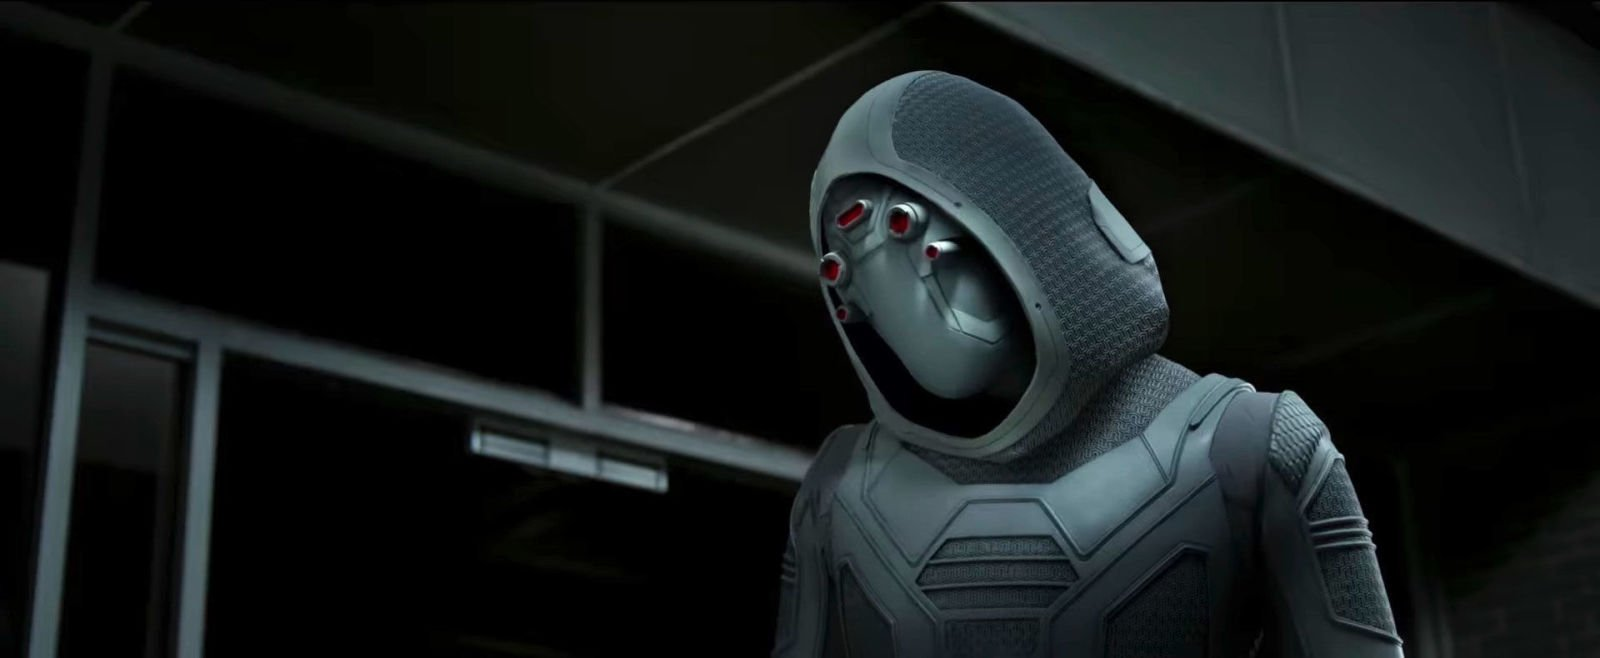 Ant-Man and the Wasp reveals first clear look at female villain Ghost in costume